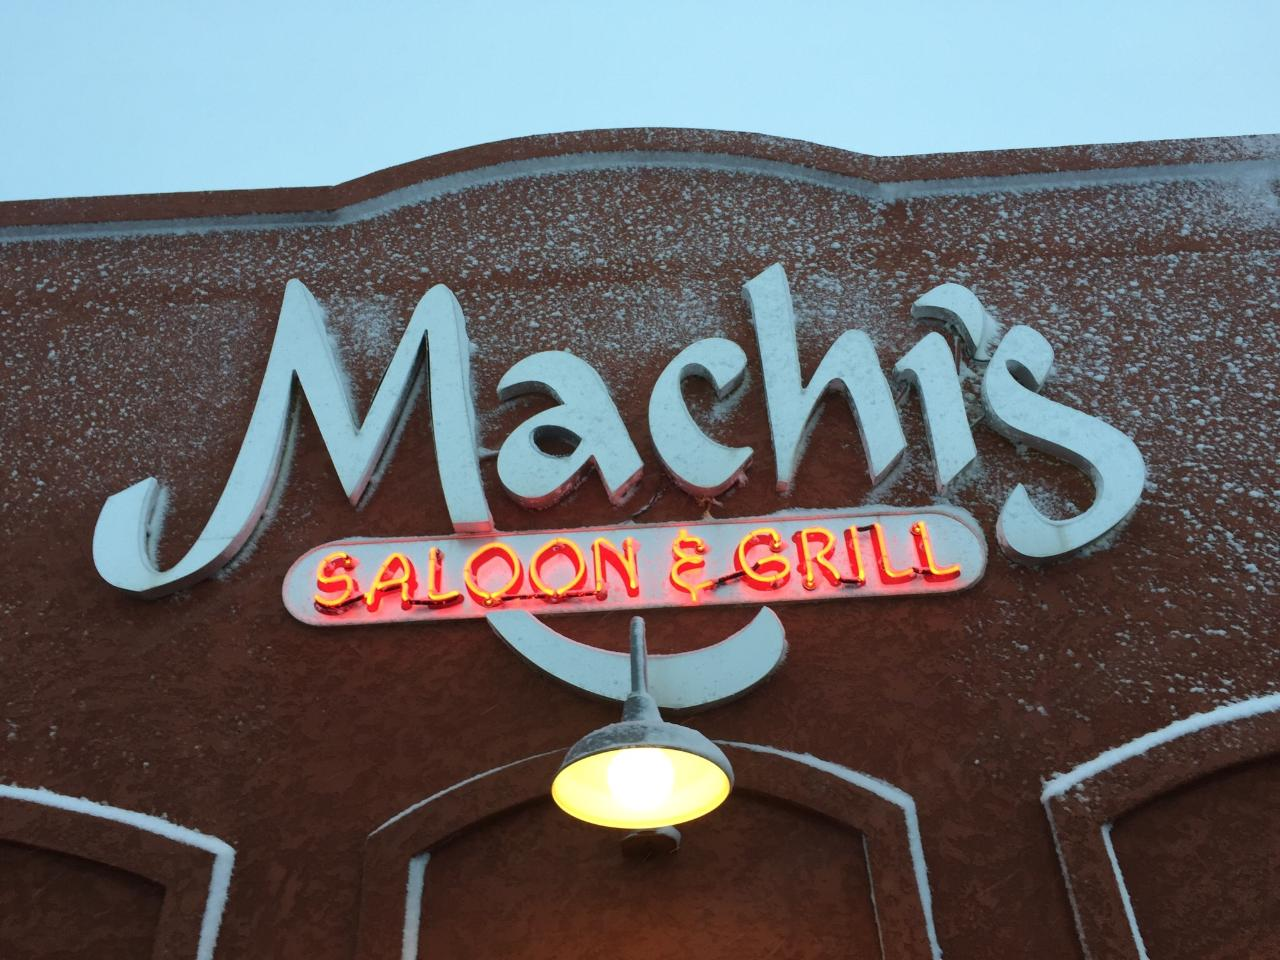 Machi's Saloon and Grill